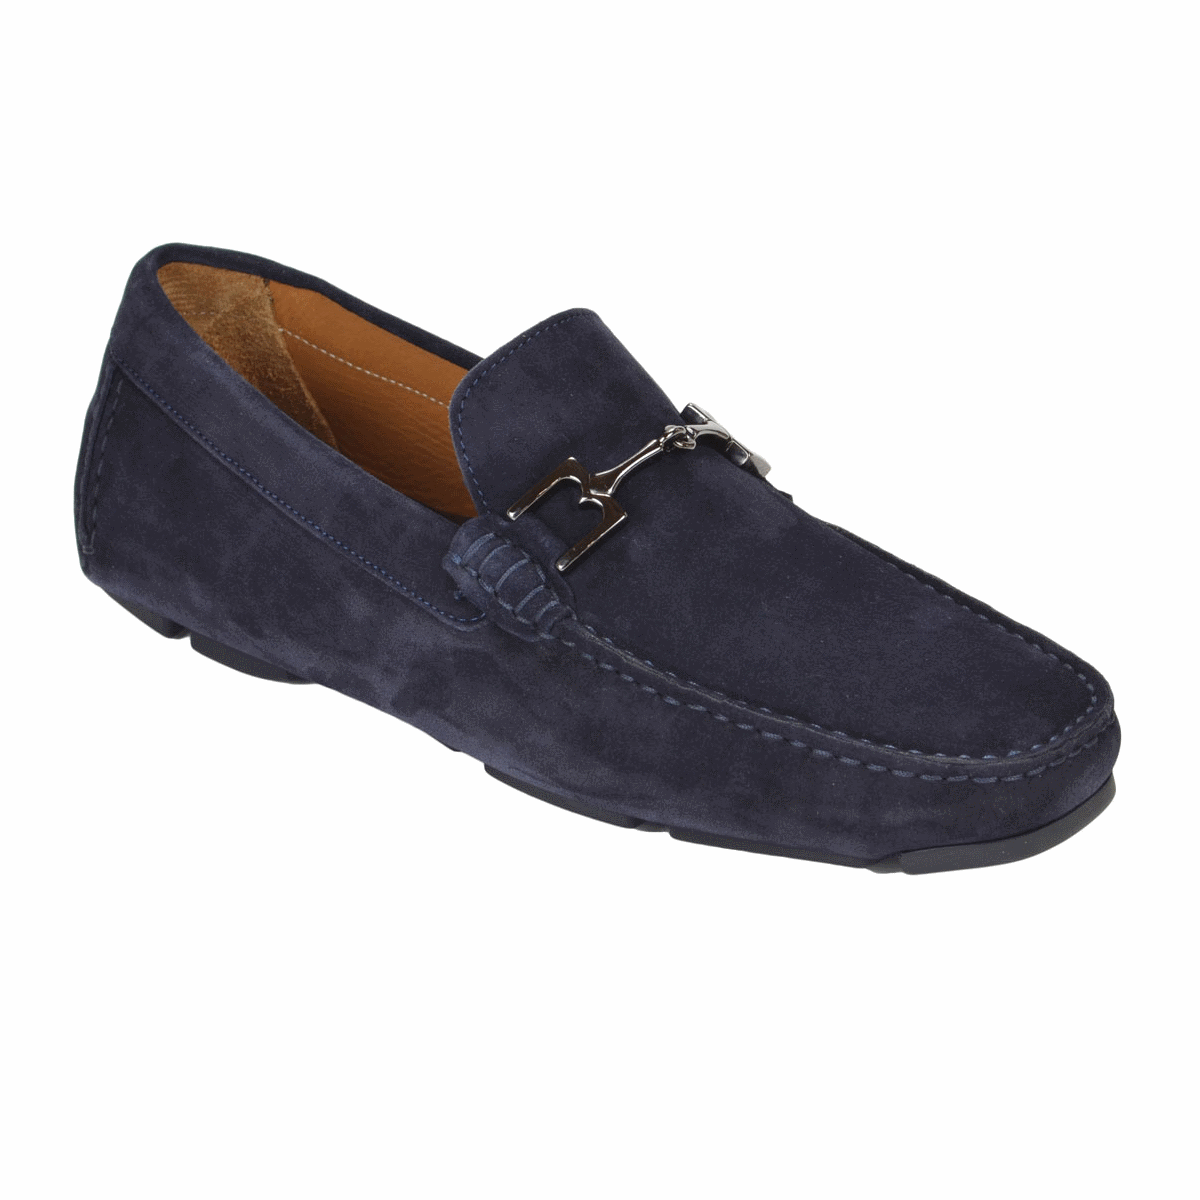 Bruno Magli Monza Suede Bit Loafers Navy Image